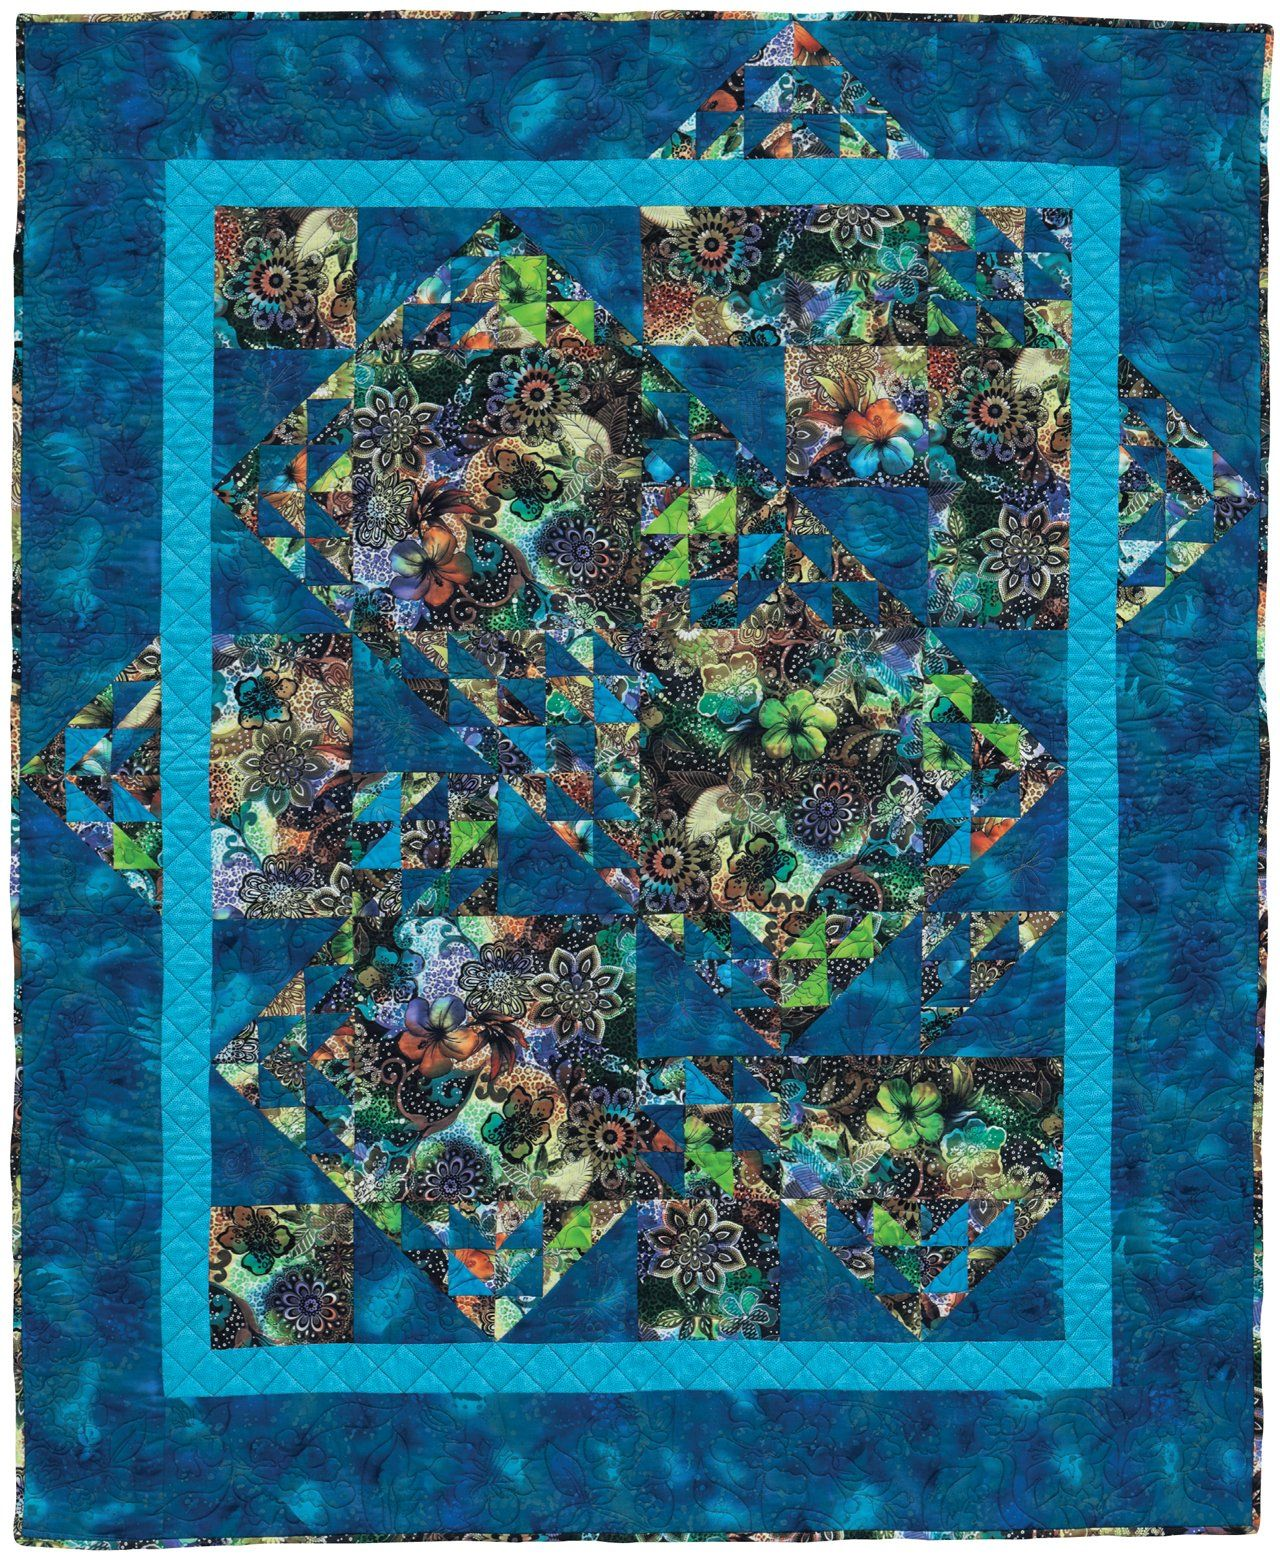 Half square triangle quilt design for big-print fabrics by Sandy ... : quilt patterns for big prints - Adamdwight.com